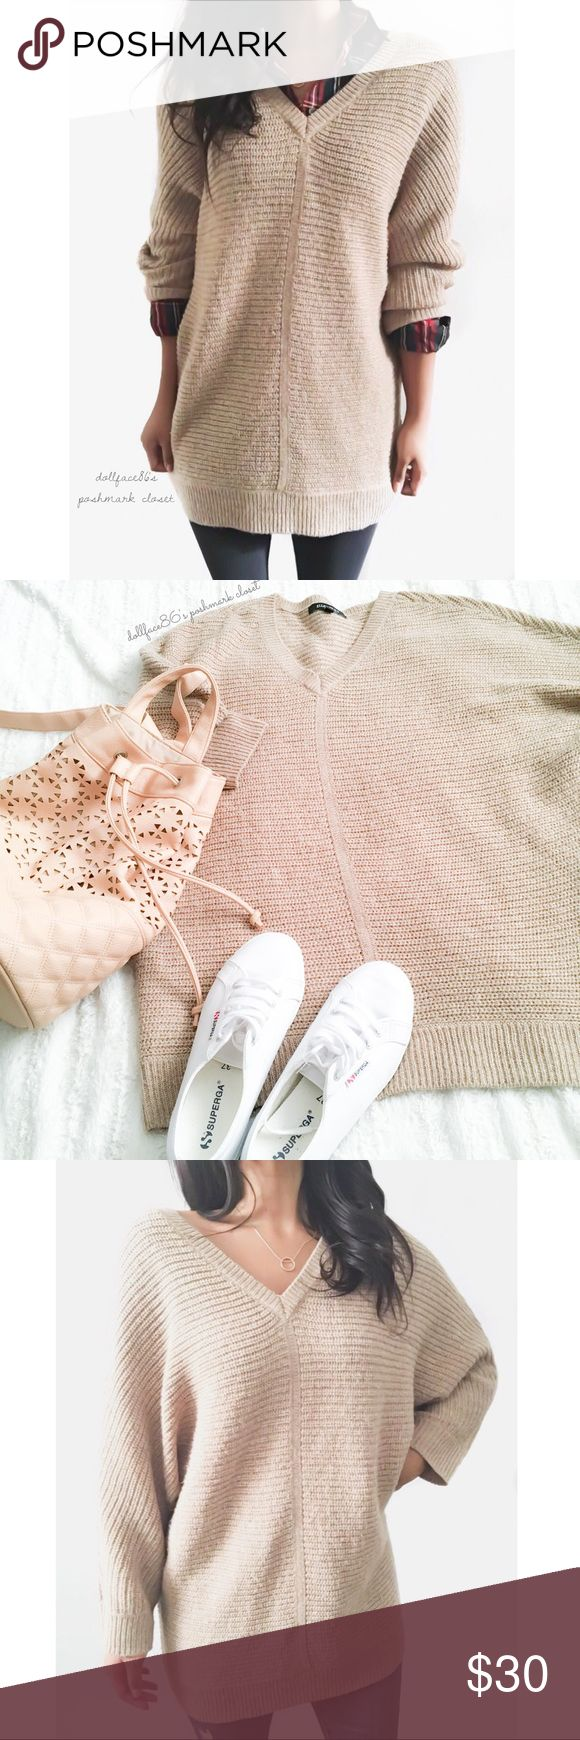 """Super Cozy Dolman Sweater ✦   ✦{I am not a professional photographer, actual color of item may vary ➾slightly from pics}  ❥chest:26.5"""" ❥waist:23.5"""" ❥length:29"""" ❥sleeves:23.5"""" ➳acrylic + viscose/machine wash  ➳fit:in my opinion true w/a stretch to knit & longer fit dolman sleeves  ➳condition:gently used   ✦20% off bundles of 3/more items ✦No Trades  ✦NO HOLDS ✦No lowball offers/sales are final  ✦‼️BE A RESPONSIBLE BUYER PLS ASK QUESTIONS/USE MEASUREMENTS TO MAKE SURE THIS WILL WORK FOR {YOU}…"""